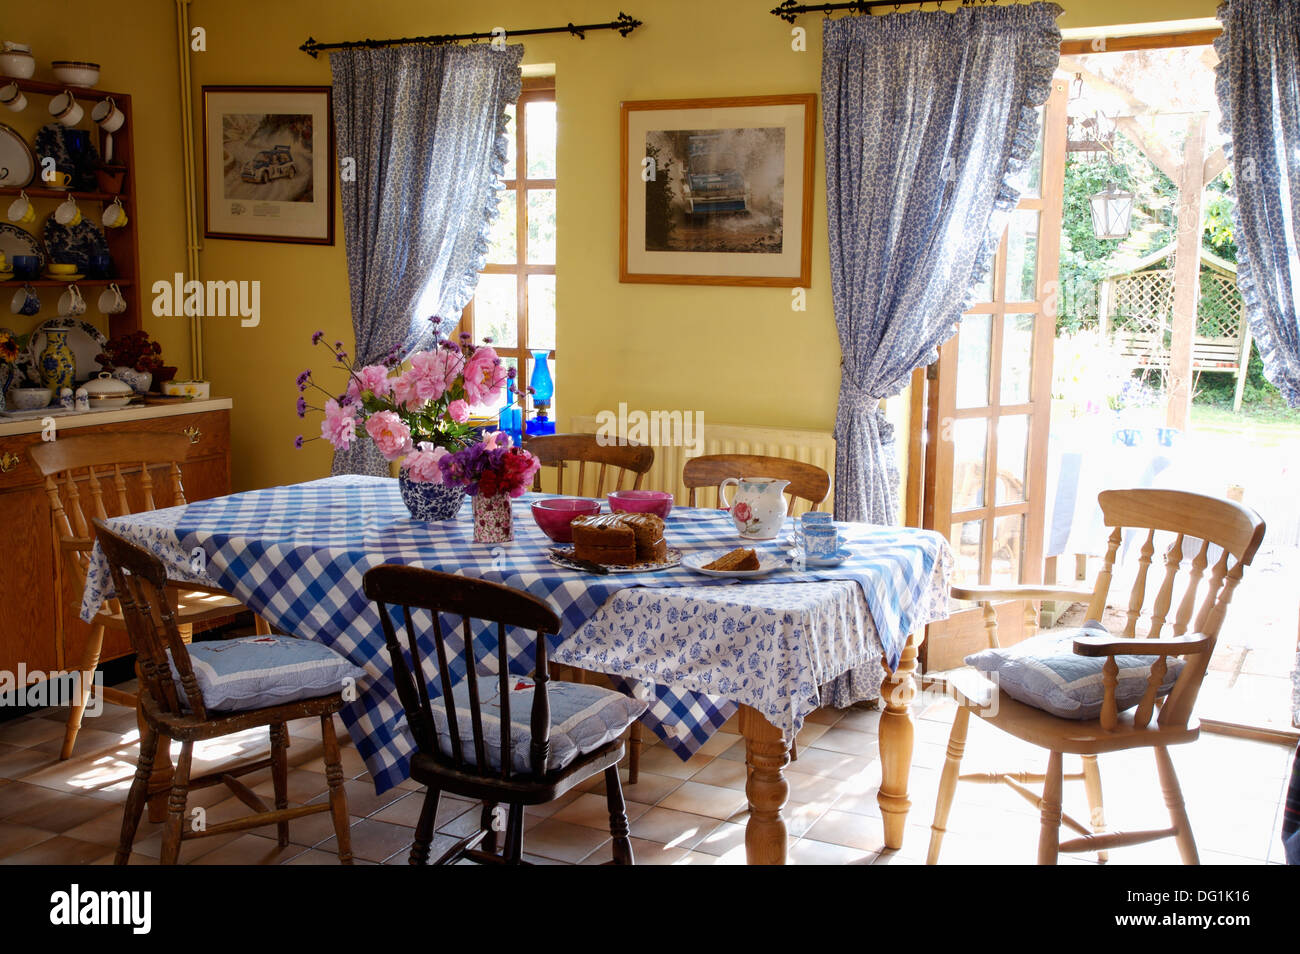 Blue Checked Cloth On Table With Stick Back Chairs In Yellow Dining Room  With Blue Curtains At French Windows To The Garden